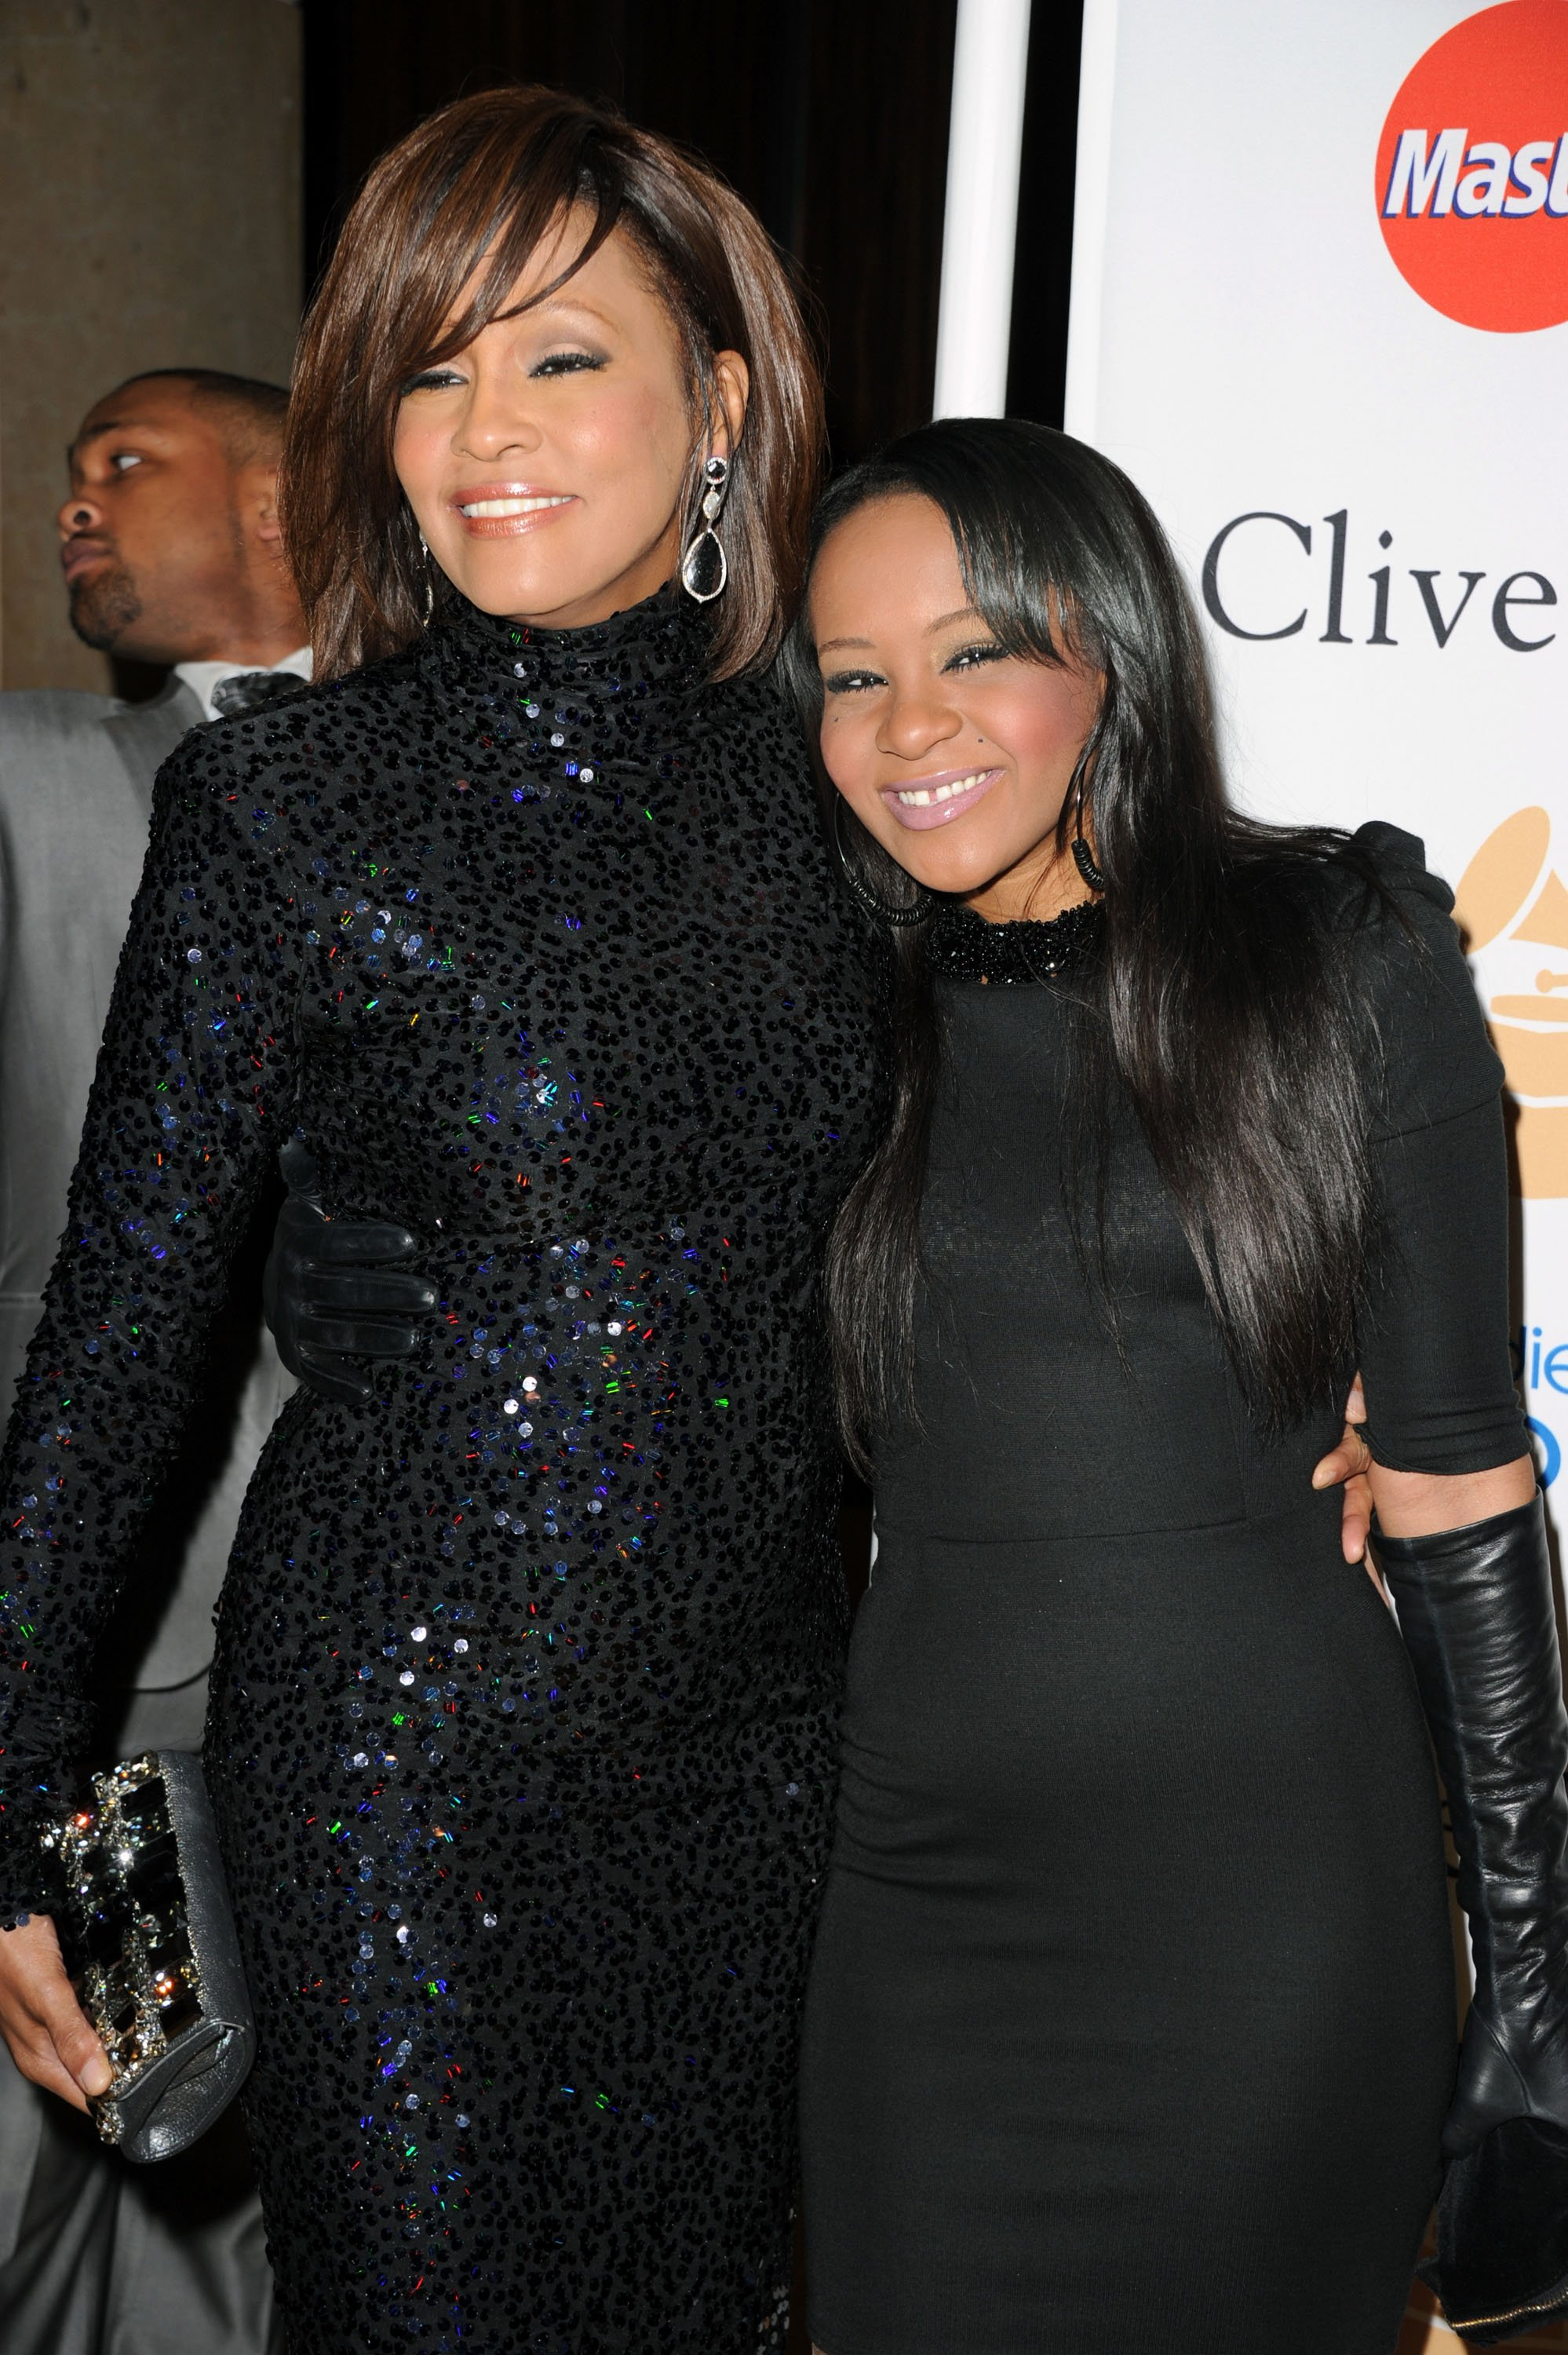 Whitney Houston & Bobbi Kristina Brown at the 2011 Pre-GRAMMY Gala on Feb. 12, 2011 in California | Photo: Getty Images